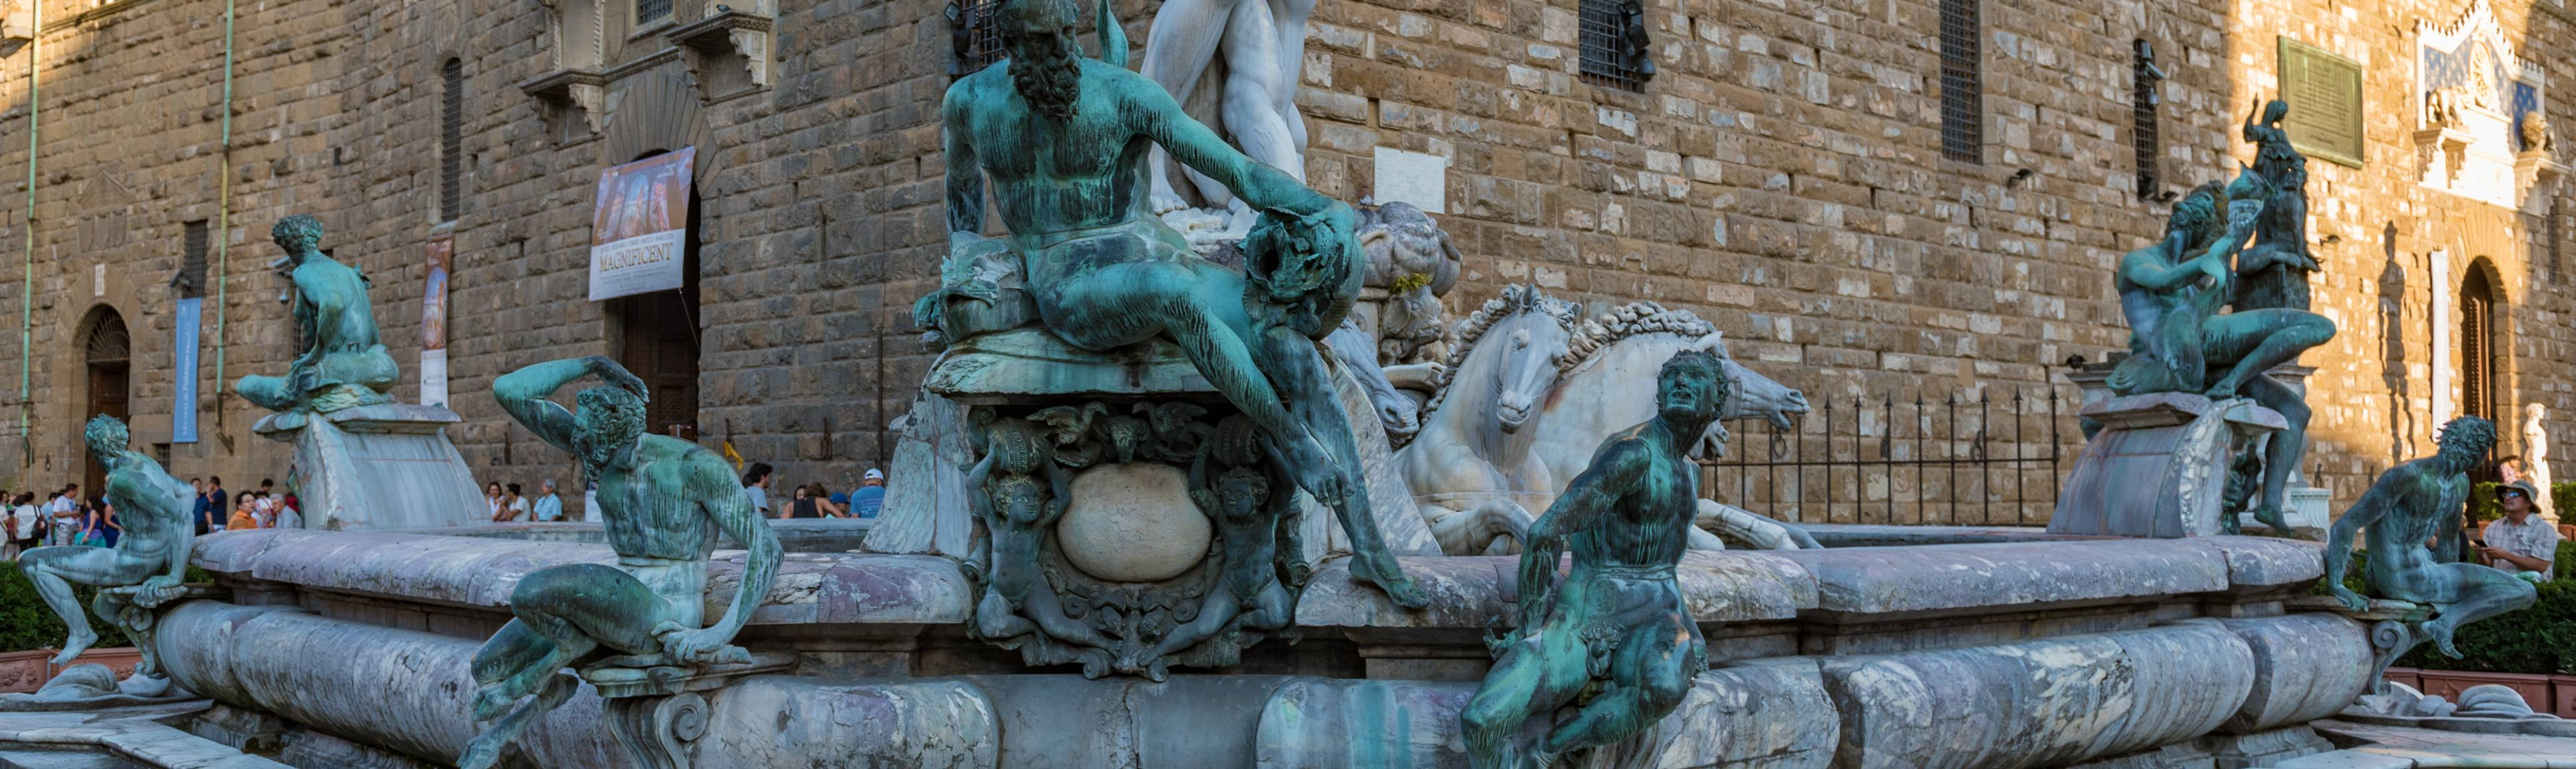 Detail of bronze statutes on Netupe's fountain in Florence, Italy